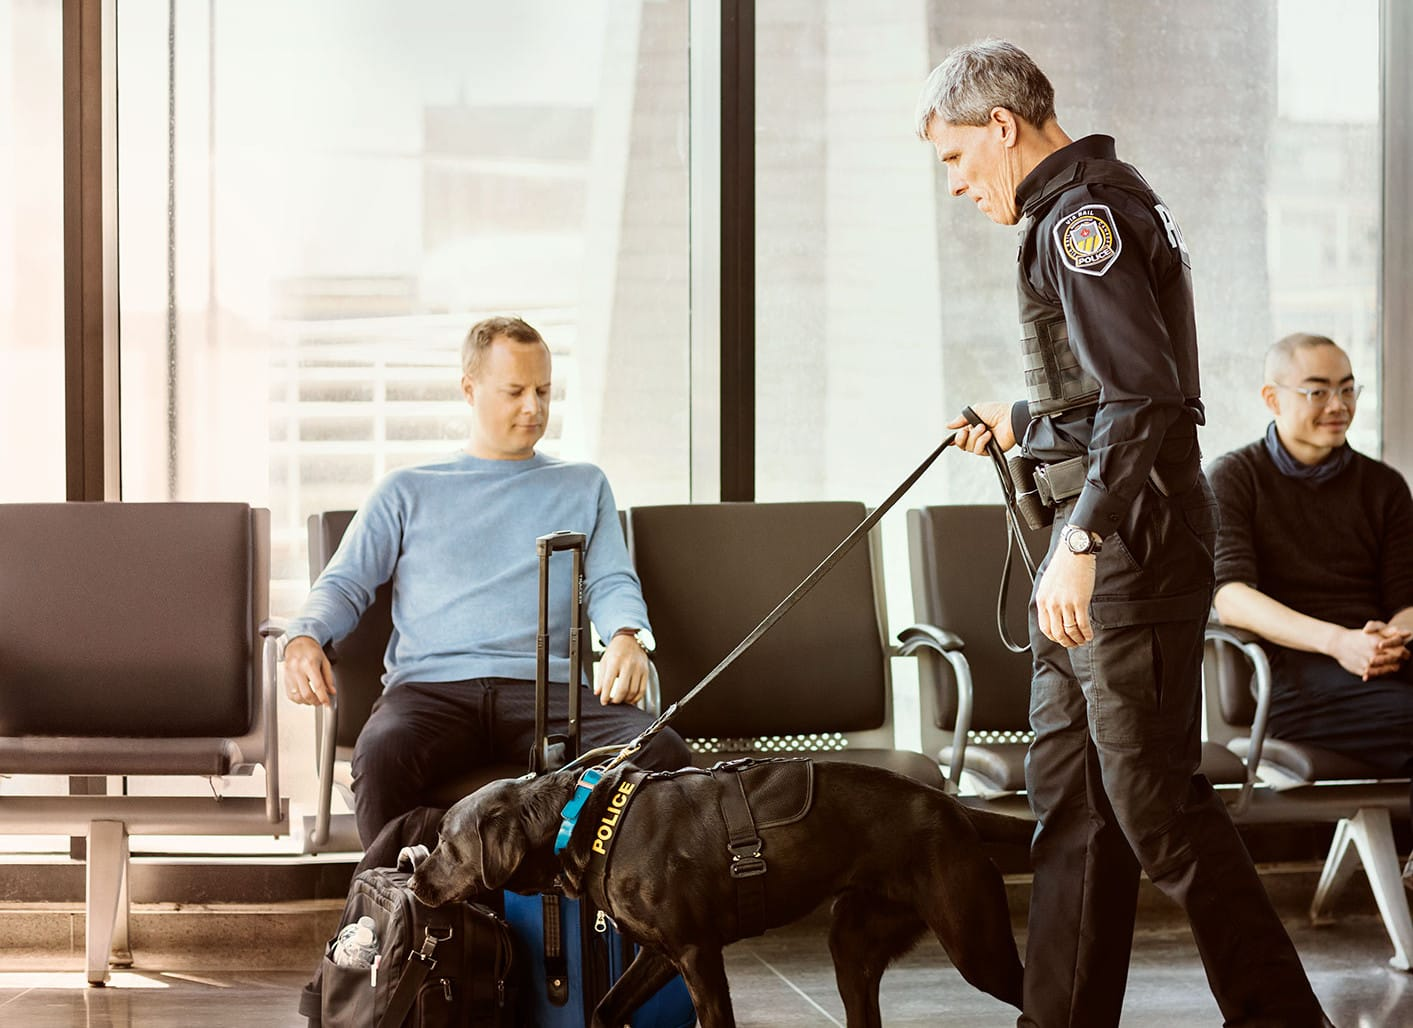 Photo of Police with a dog scaning a man's luggage.